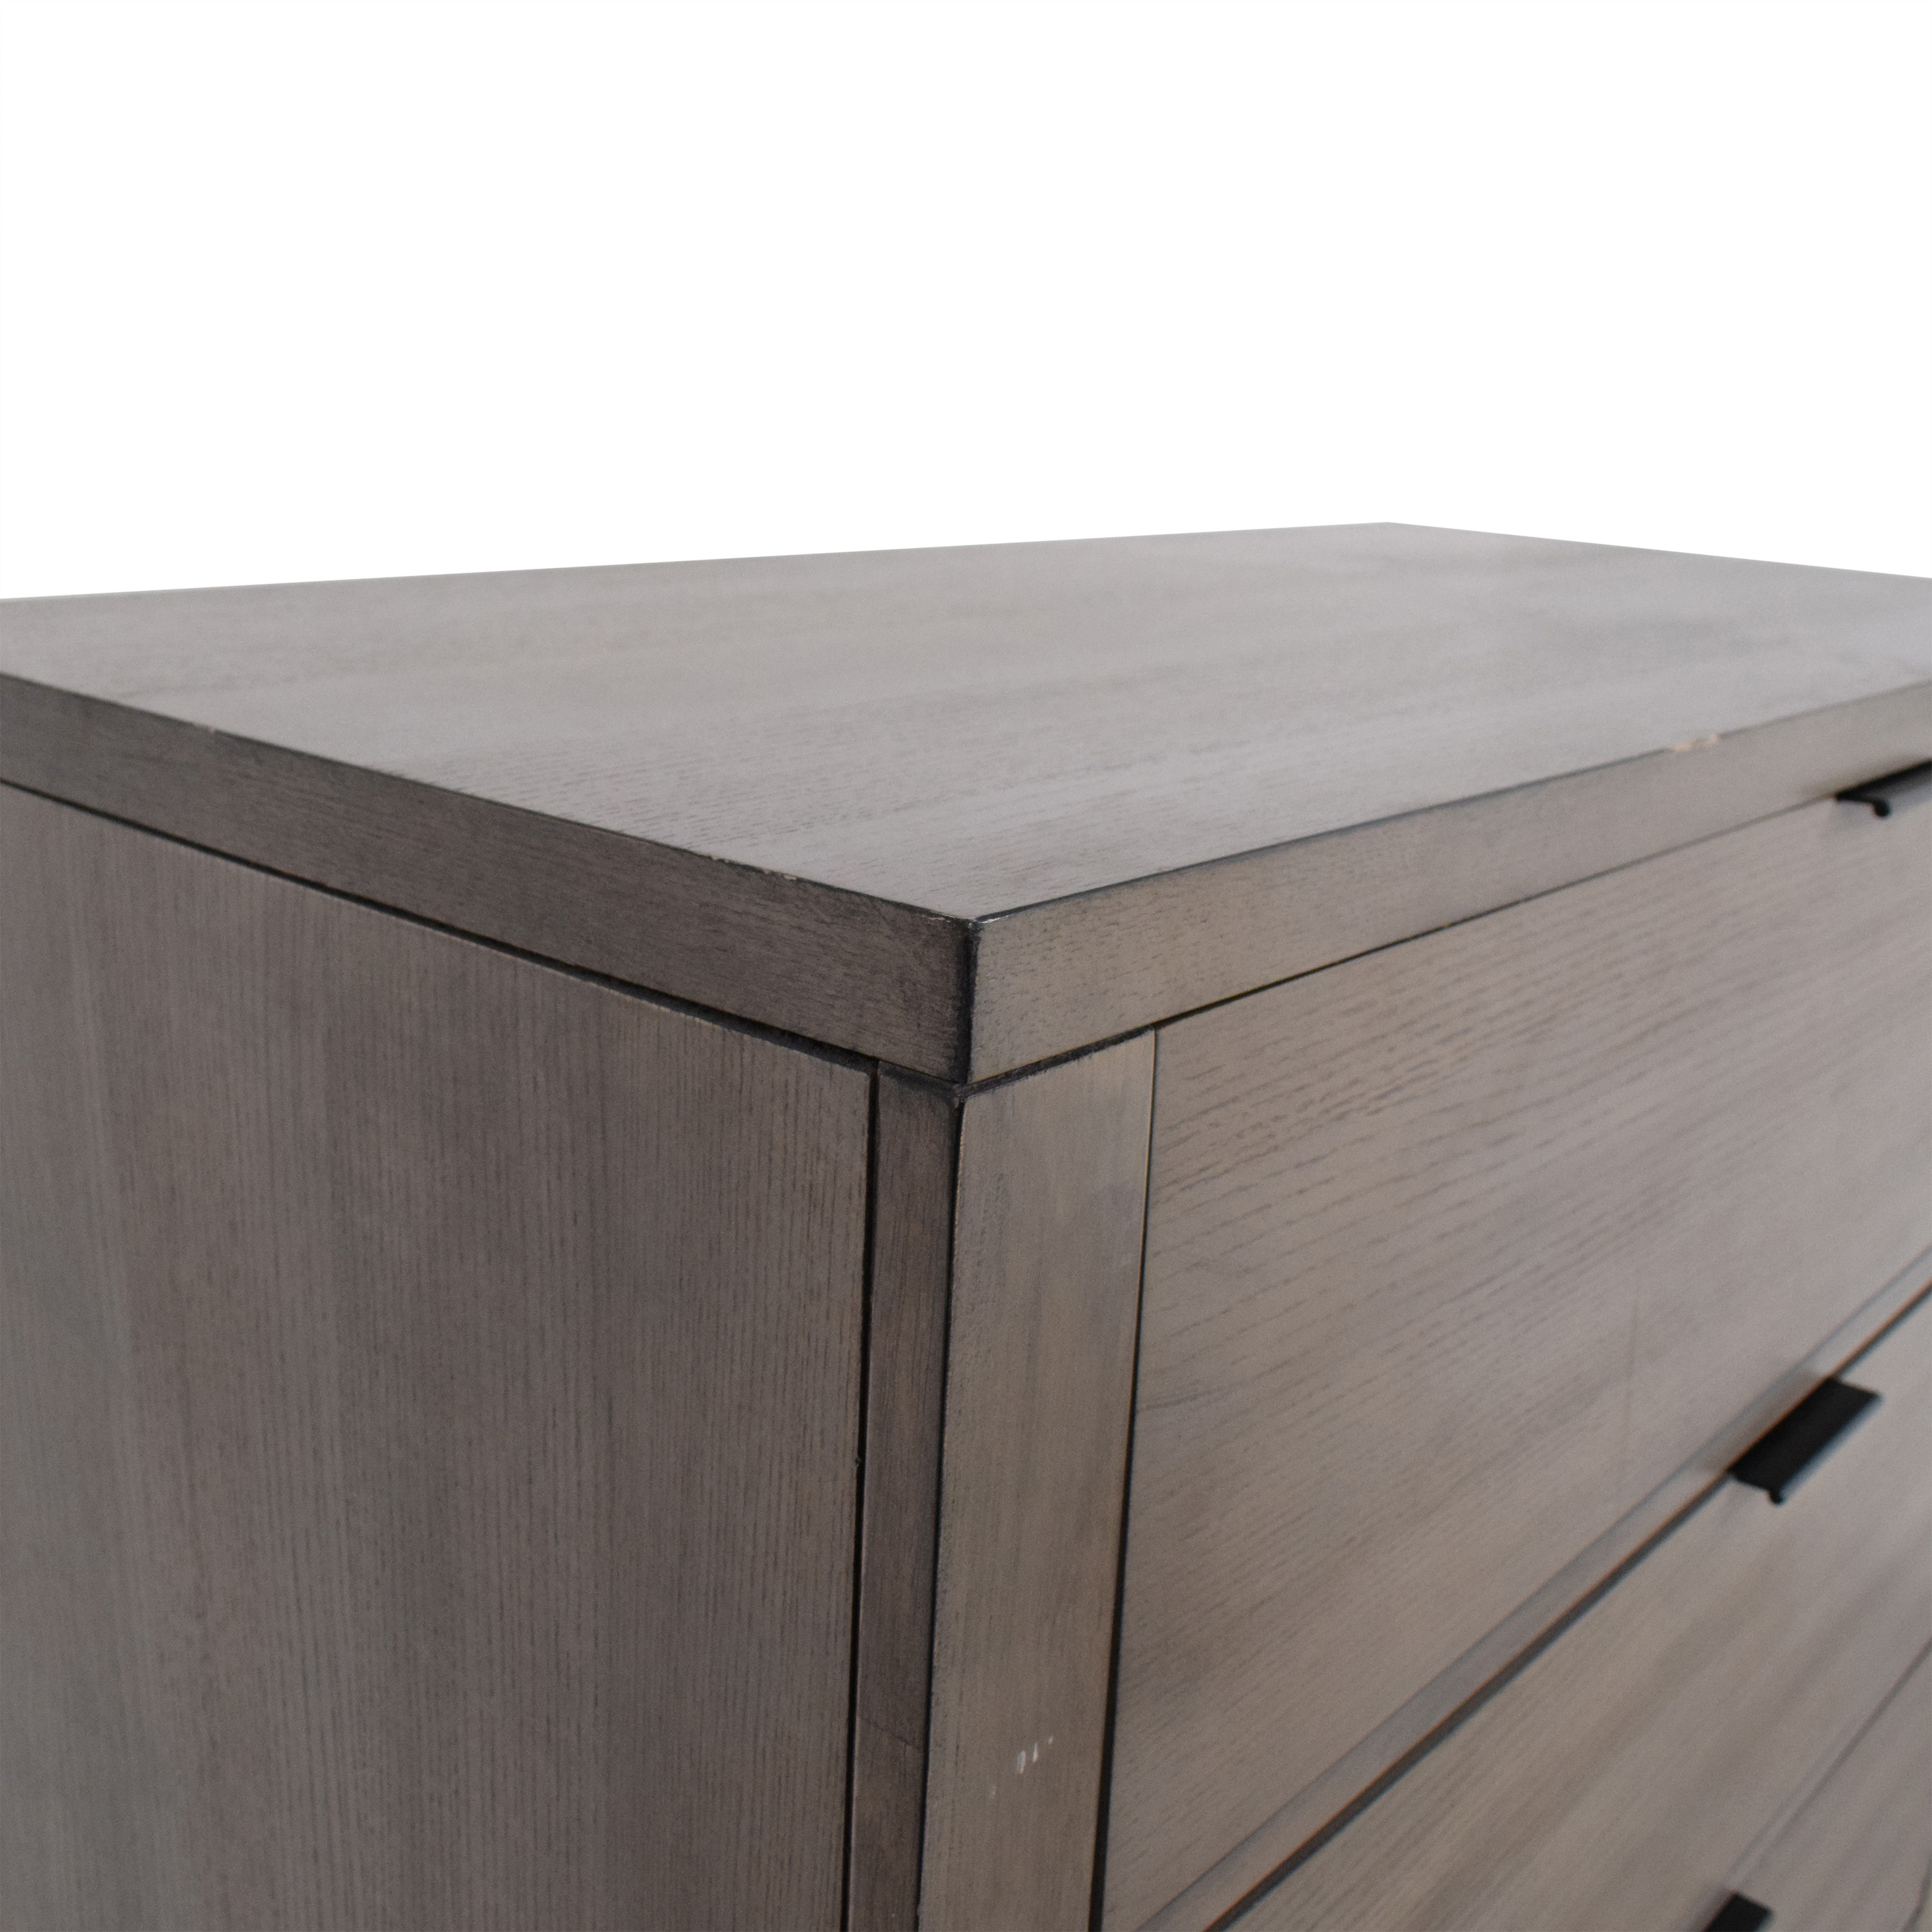 Macy's Macy's Tribeca Five Drawer Chest ct